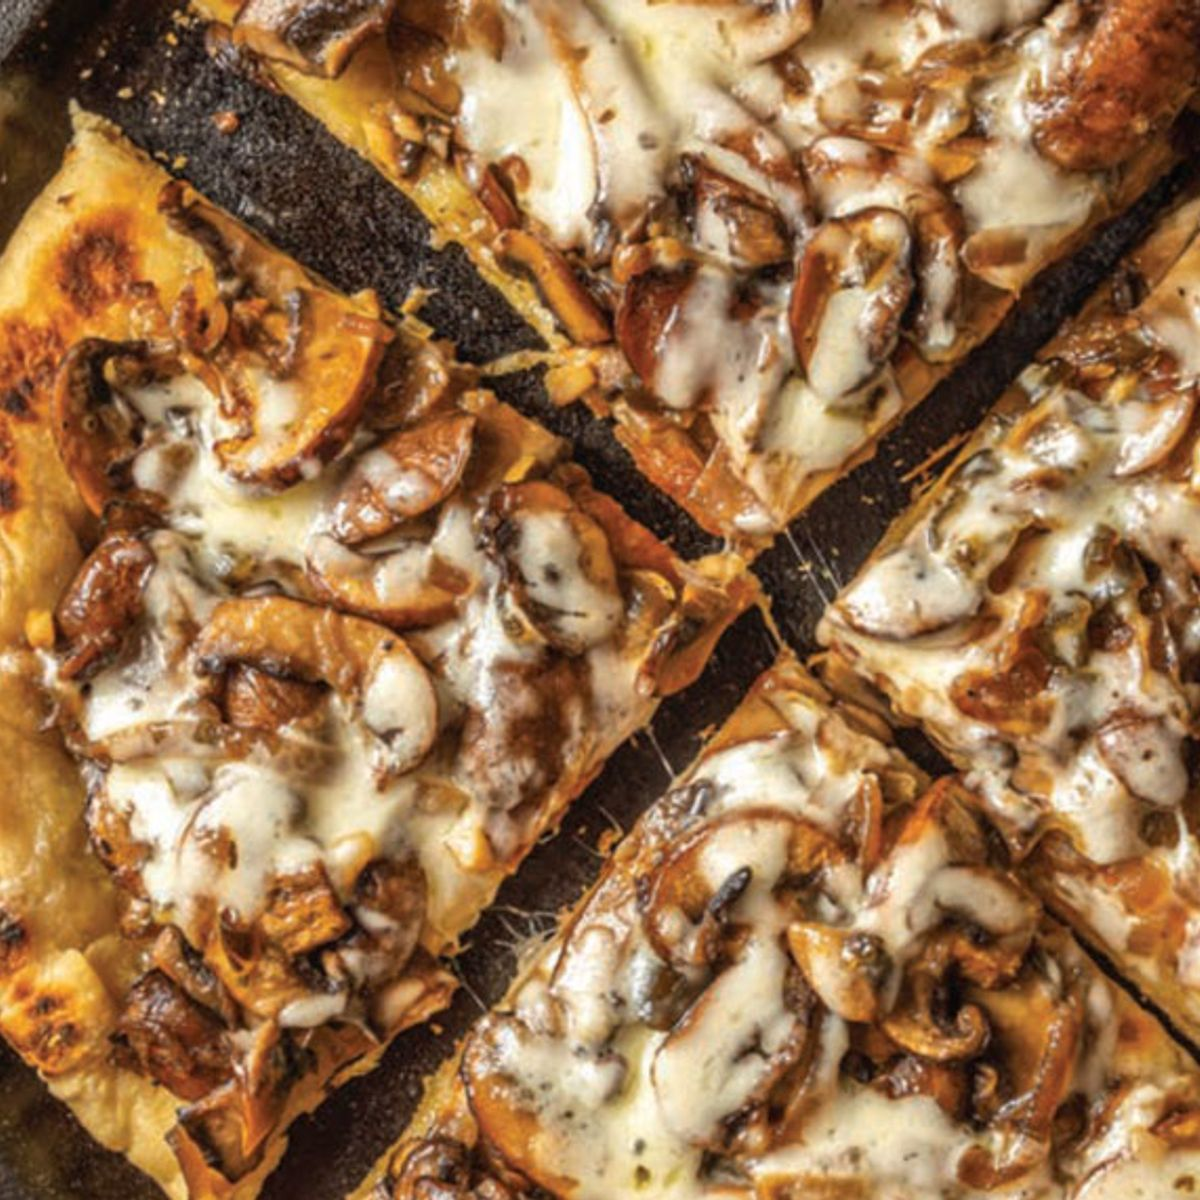 Better than delivery: This sautéed onion-mushroom flatbread is elevated by spicy-sweet jalapeños